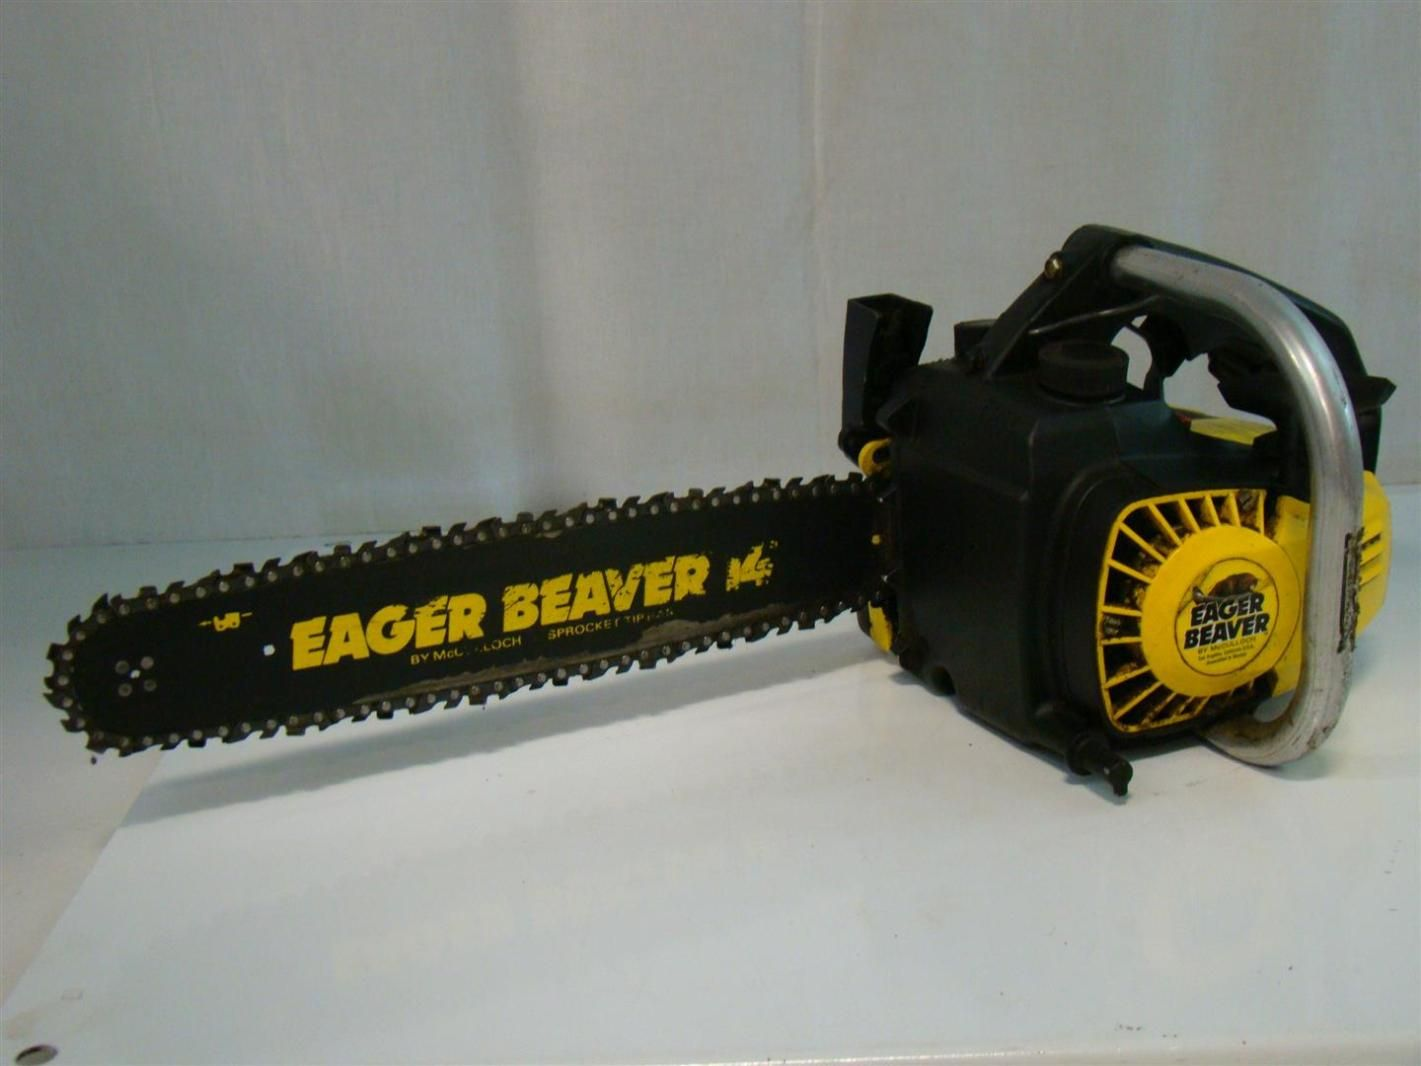 Mcculloch eager beaver 14 gas chain saw 20 cid chainsaw and weapons mcculloch chainsaw details about mcculloch eager beaver 14 gas chain saw 20 cid keyboard keysfo Choice Image